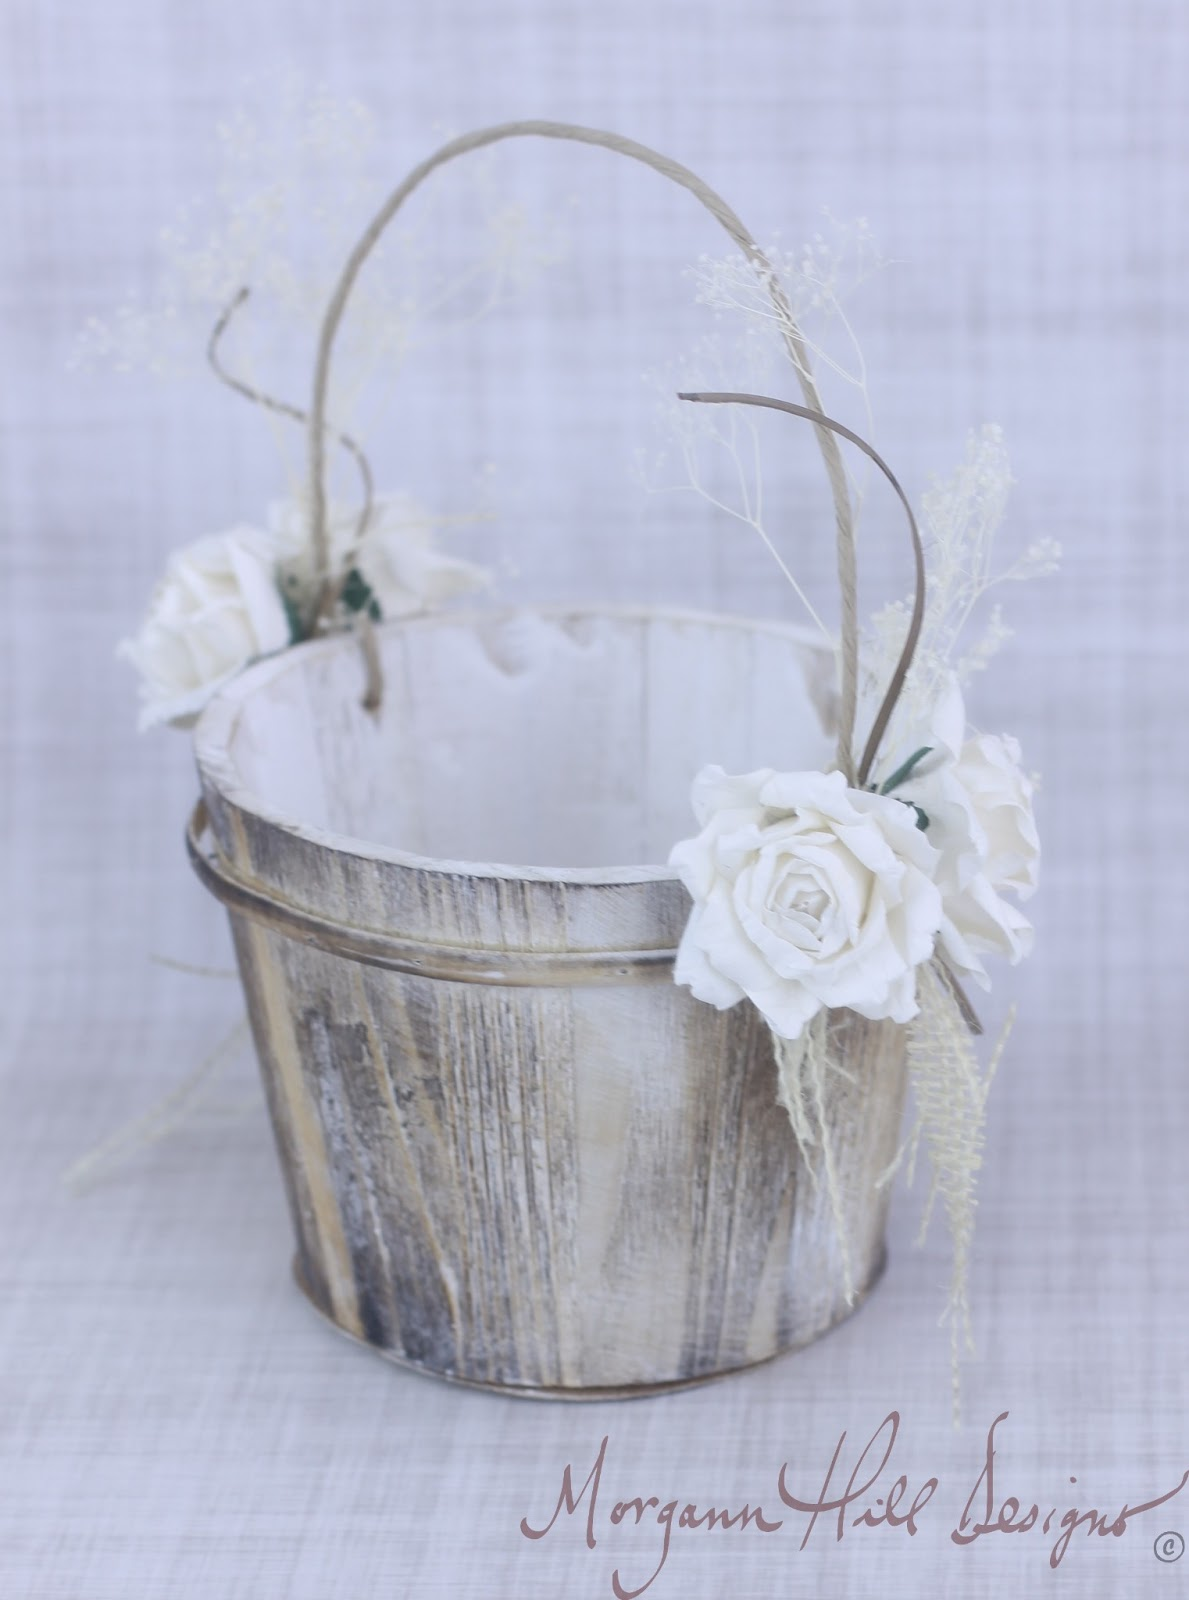 Flower Girl Baskets Burlap : Morgann hill designs rustic flower girl basket paper